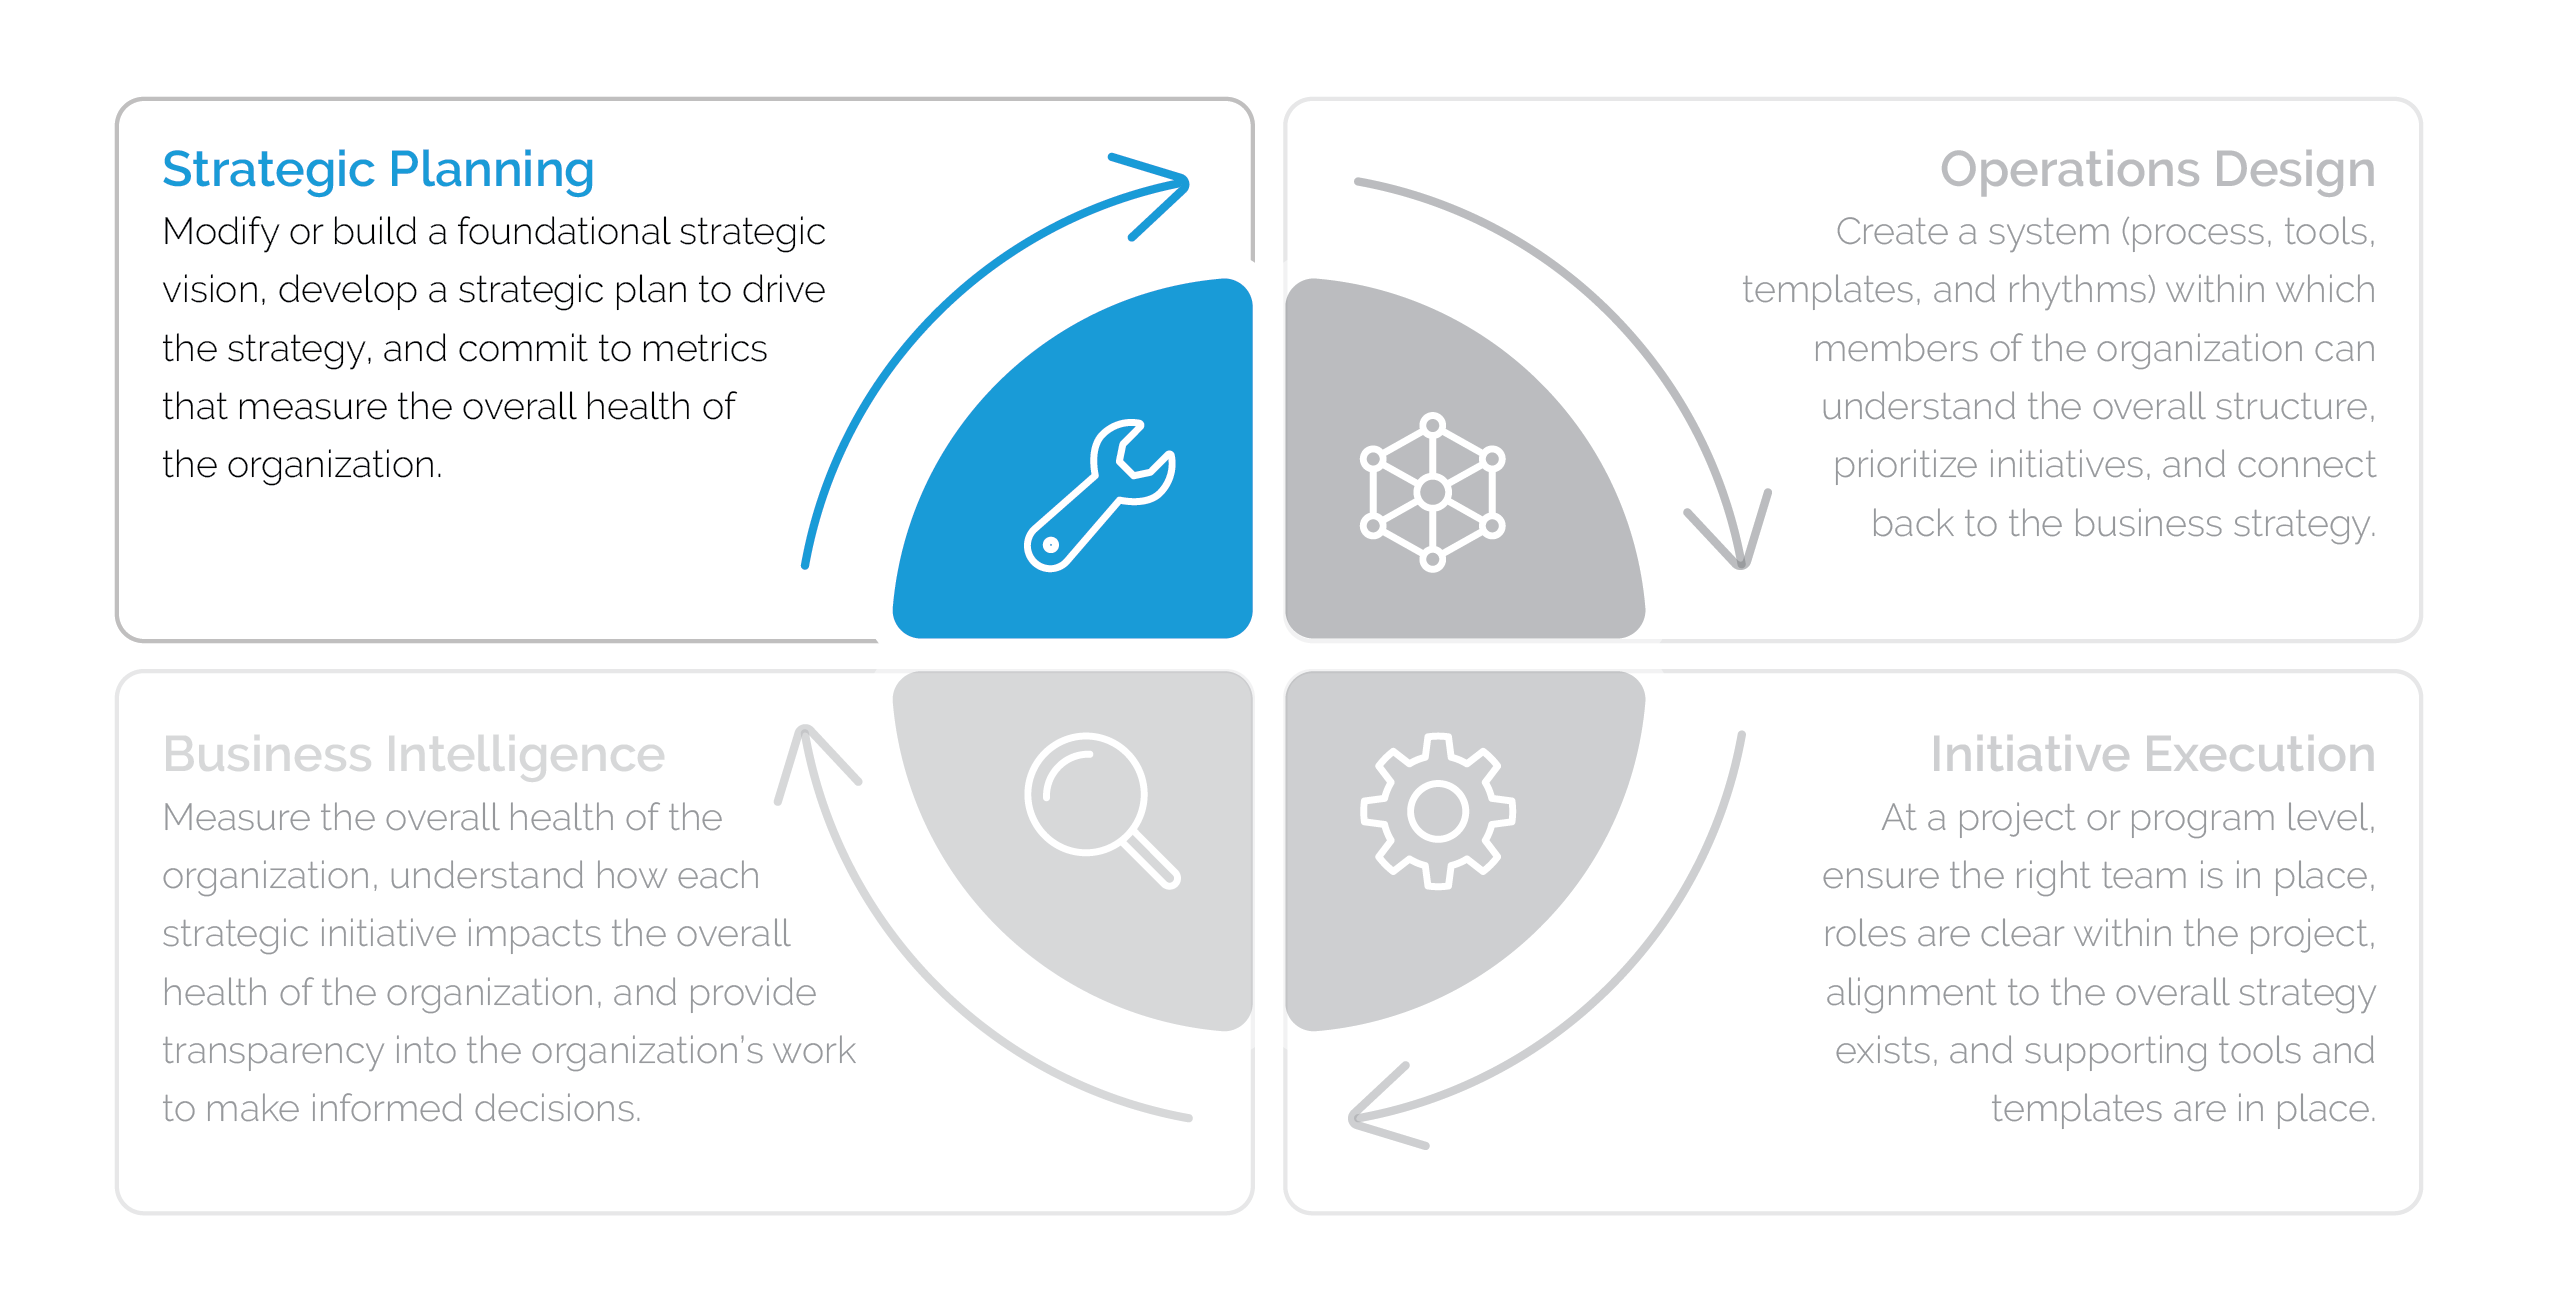 Graphic of the four steps of business operations: strategic planning, operations, design, initiative execution and business intelligence, with an emphasis on strategic planning